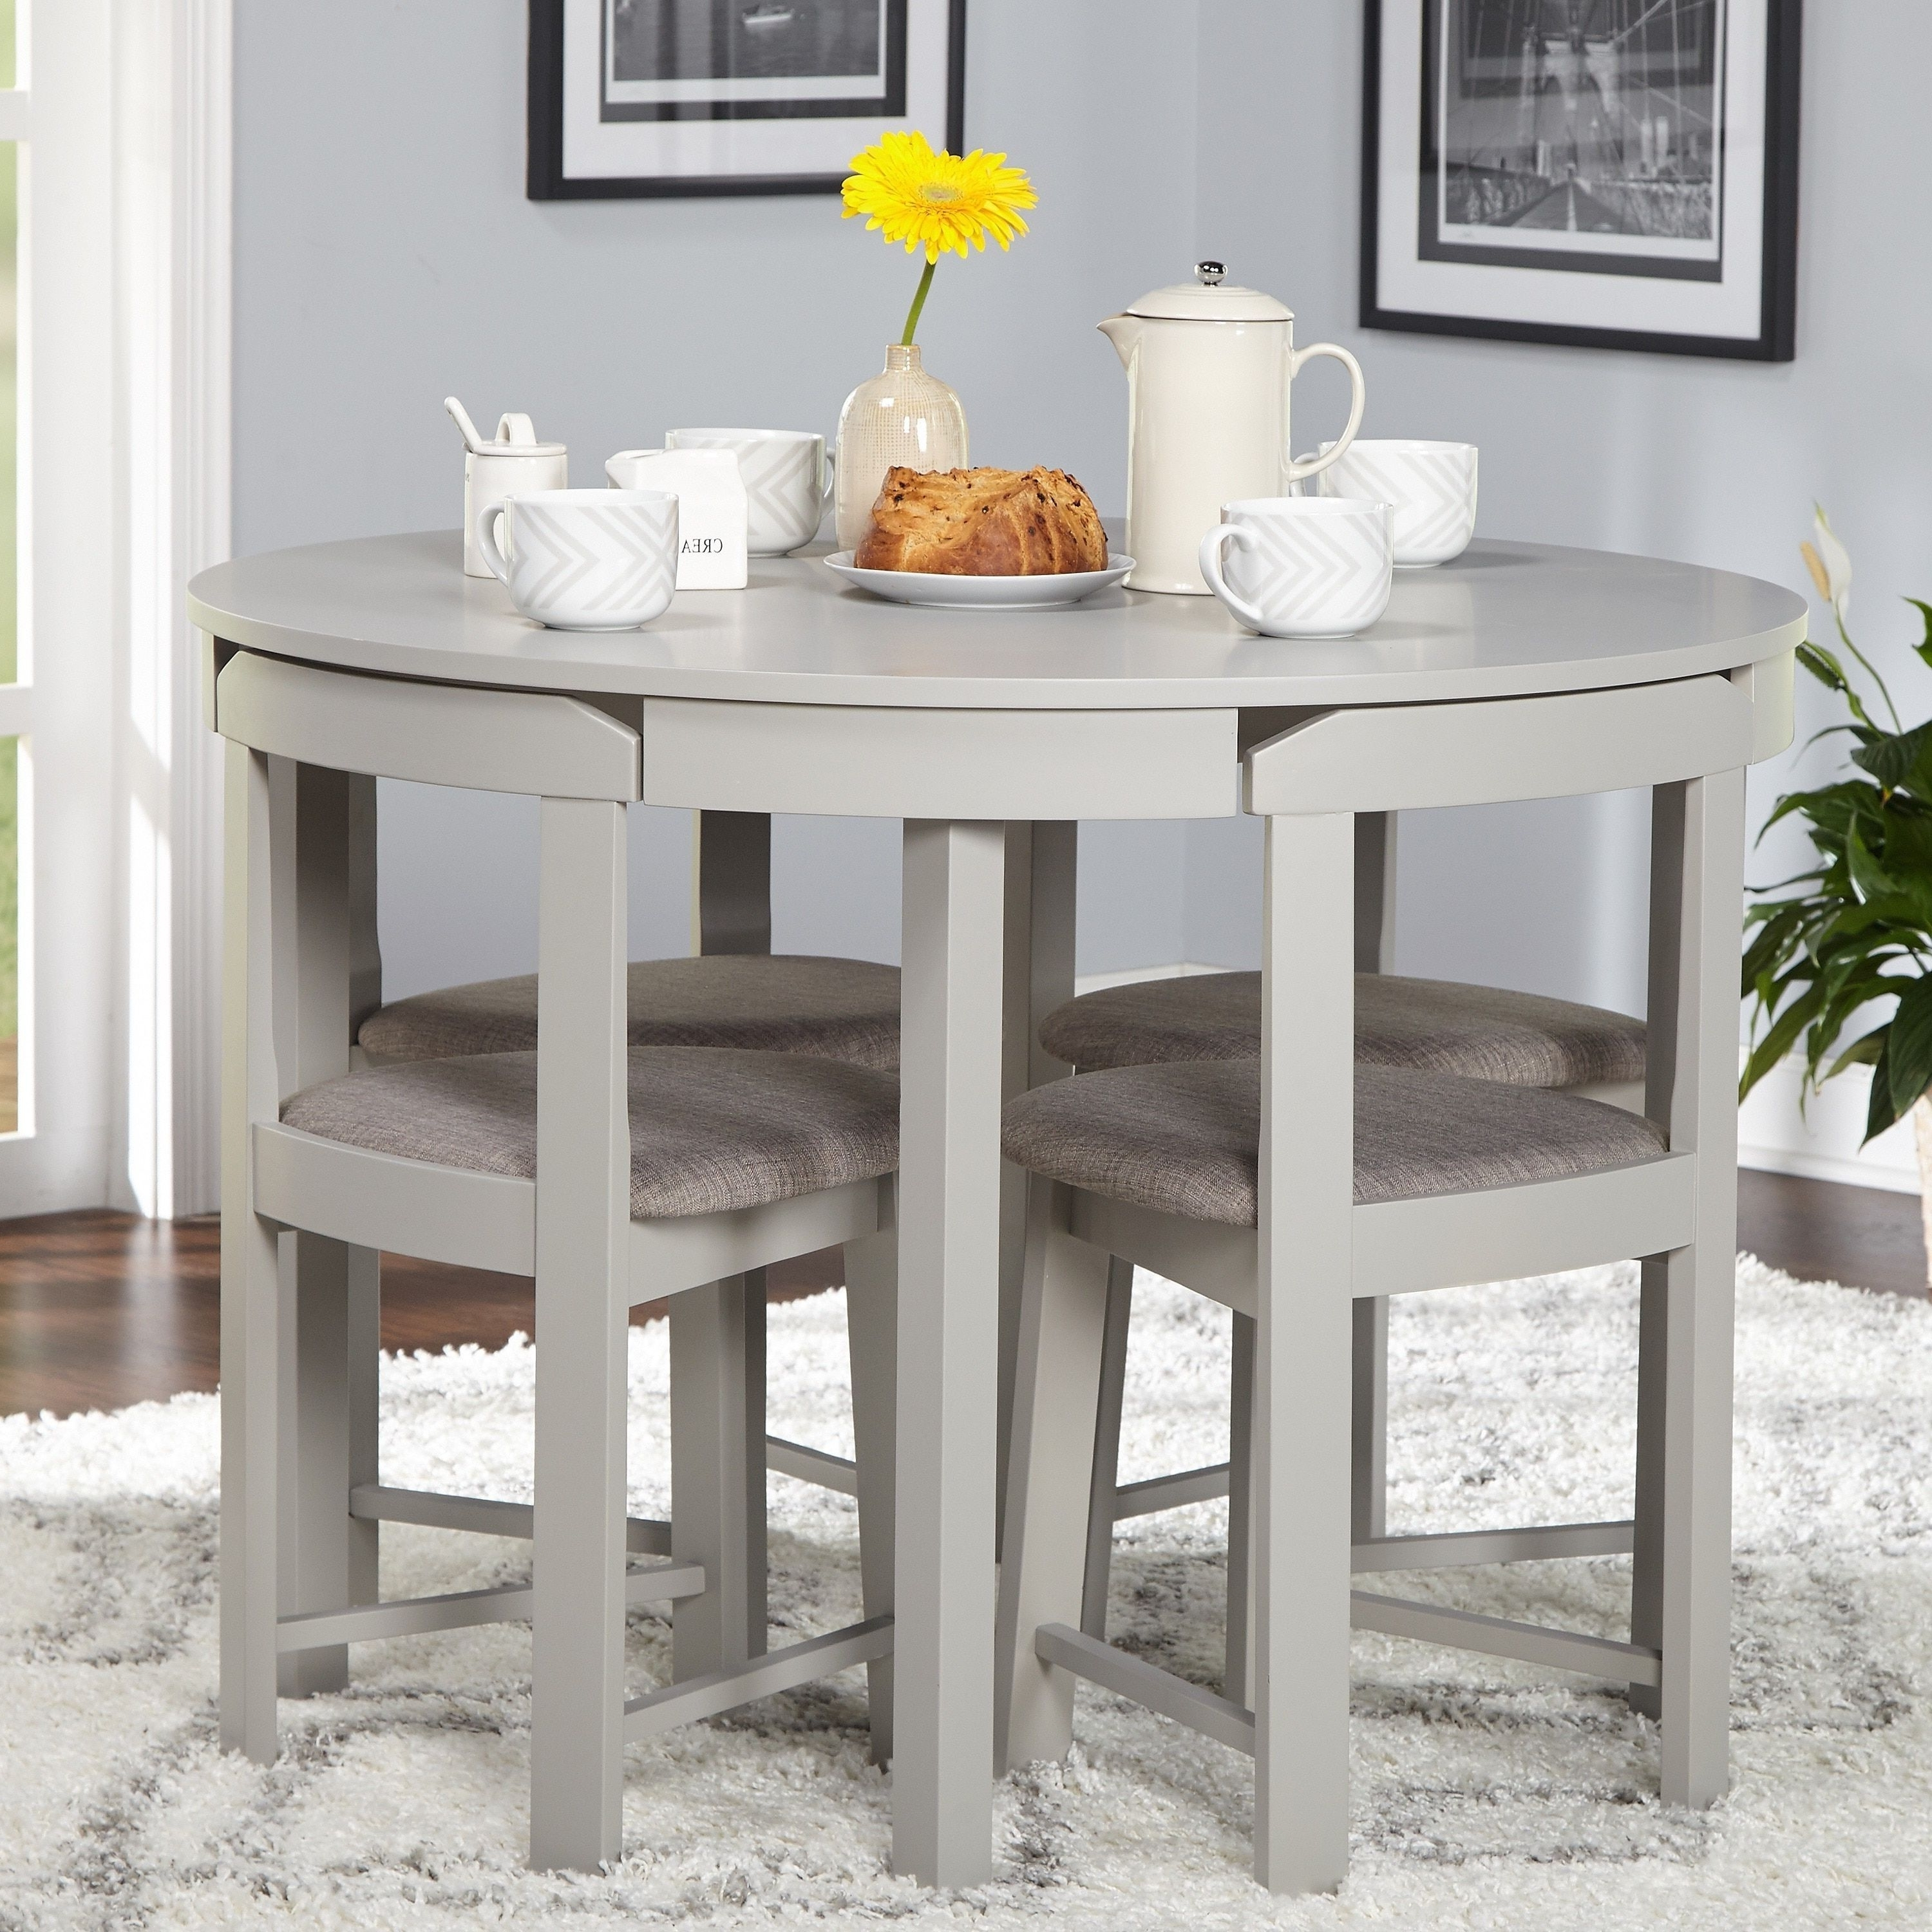 Overstock Regarding Most Current Compact Dining Room Sets (View 15 of 25)